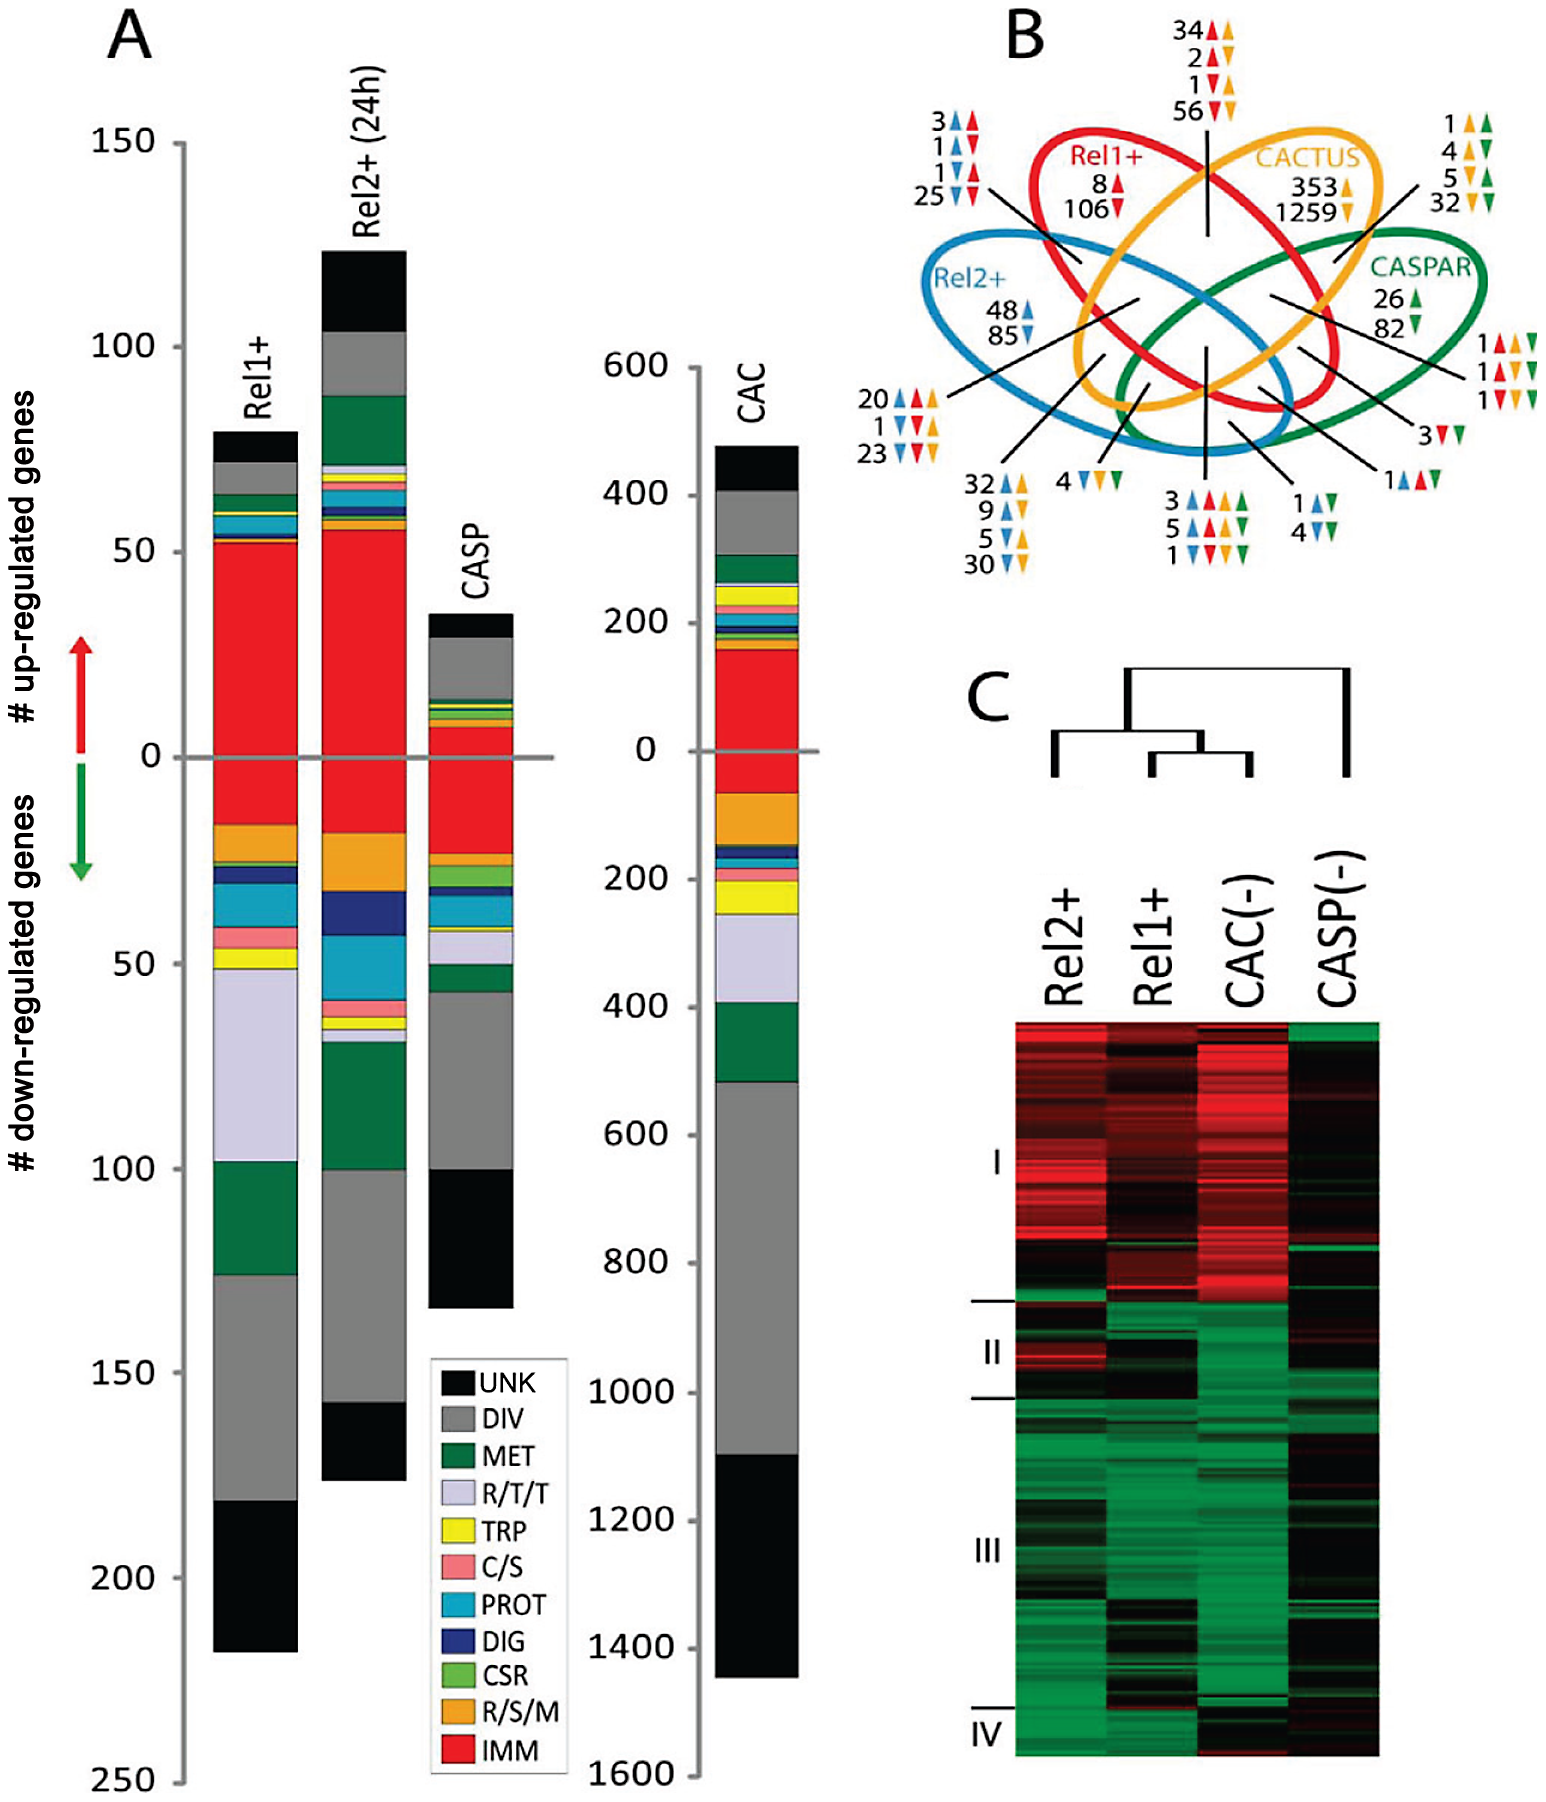 Comparative transcriptome analysis of fat body genes in REL1+ and REL2+ transgenic mosquitoes.